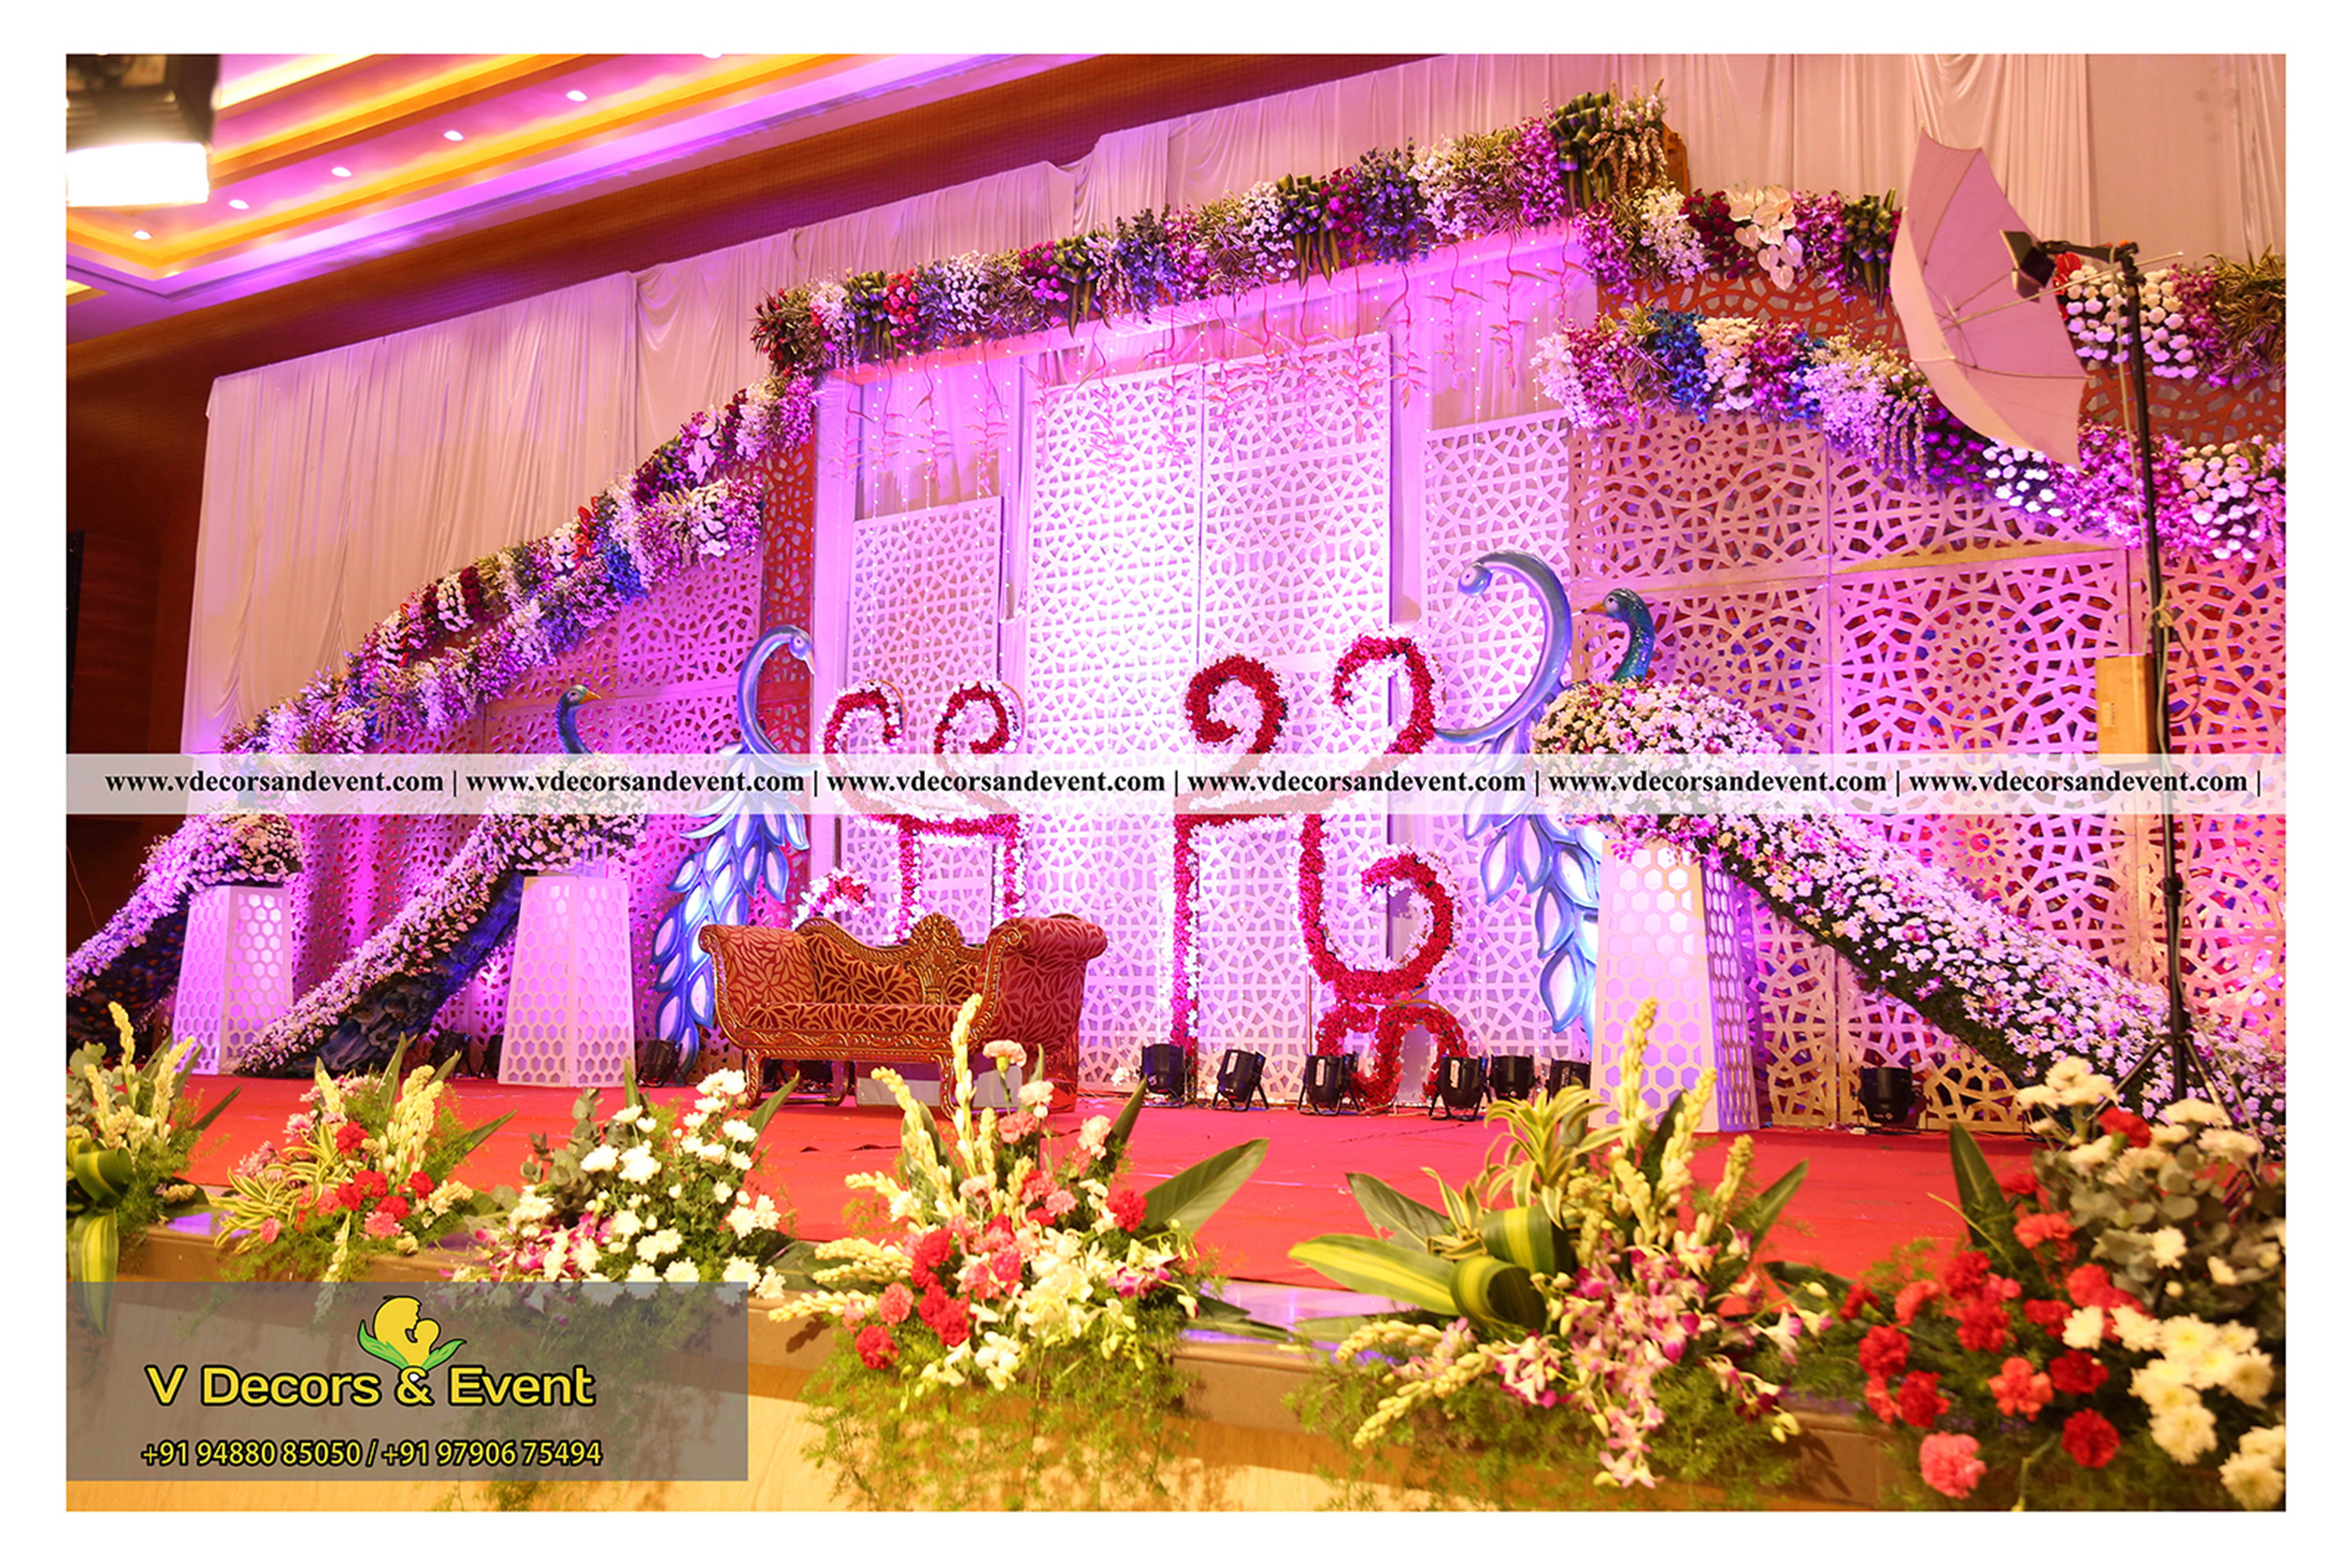 dress decor icets down ballroom decorating of up ideas wedding elegant decoration best info